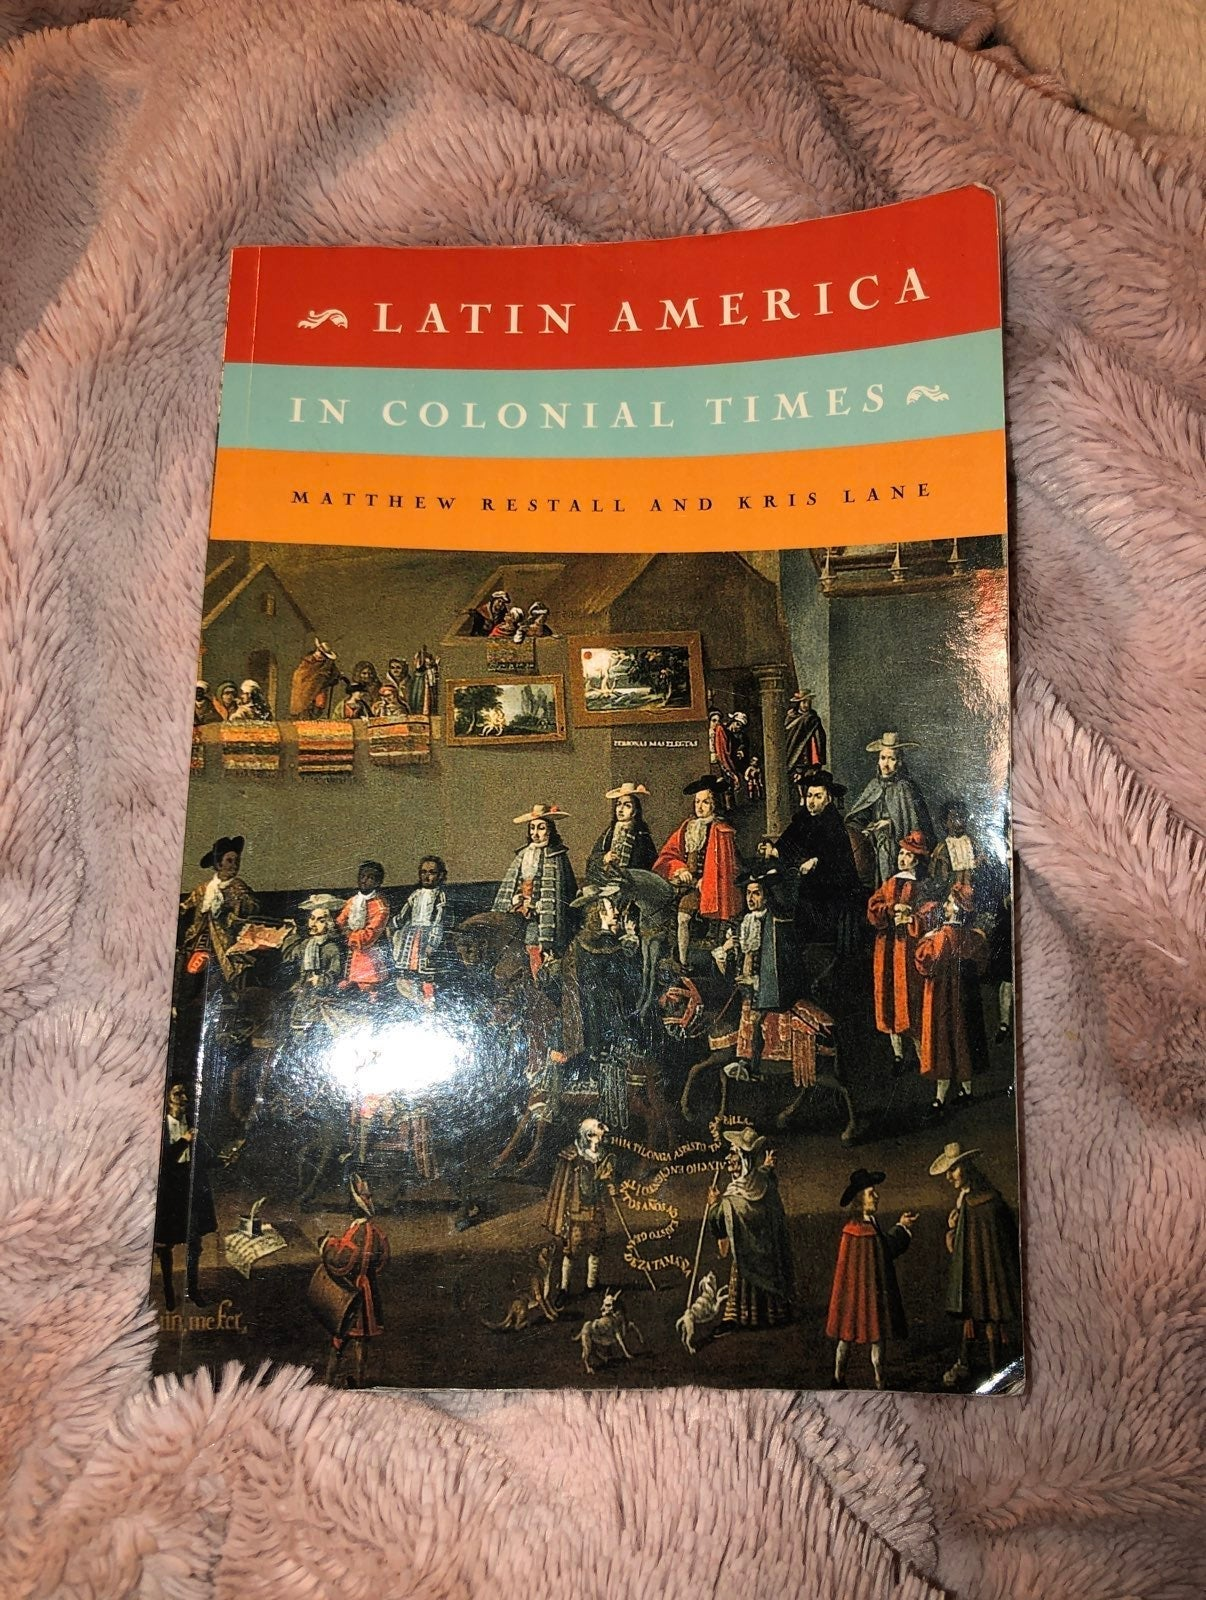 Latin America in Colonial Times by Matth